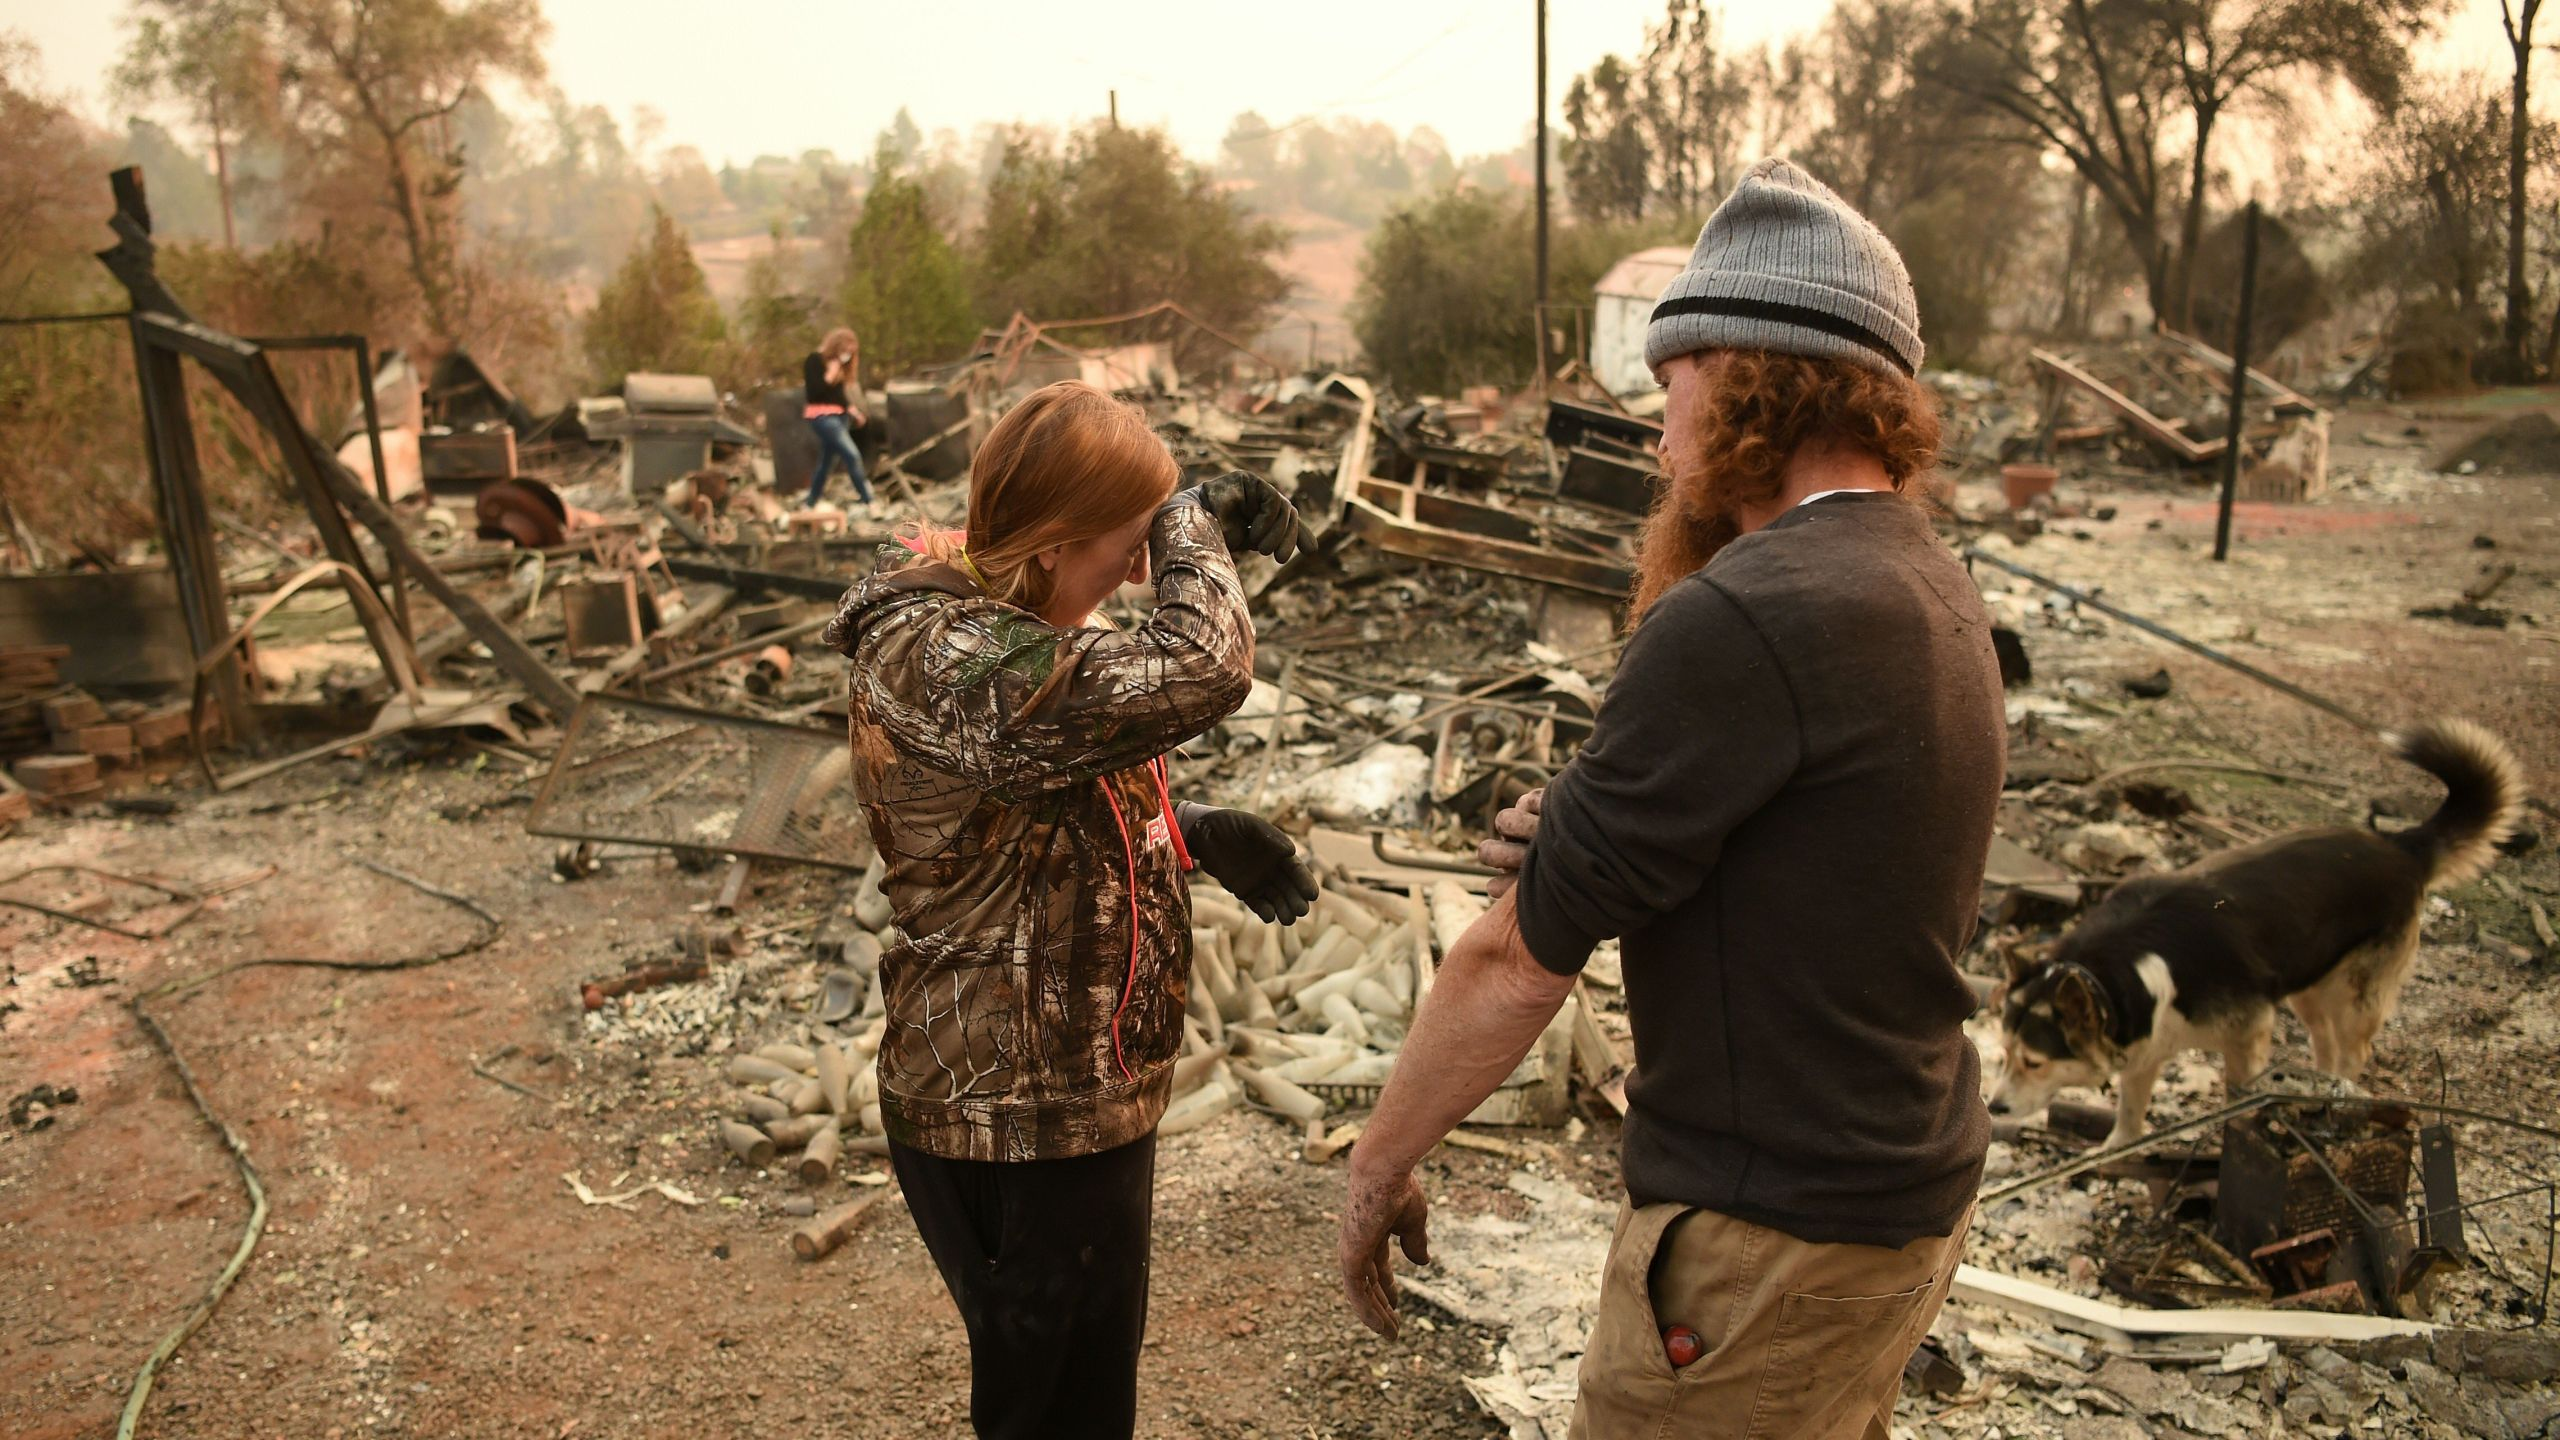 Kimberly Spainhower and her husband Ryan Spainhower weep while searching through the ashes of their burned home in Paradise, California on Nov. 18, 2018. (Credit: JOSH EDELSON/AFP/Getty Images)